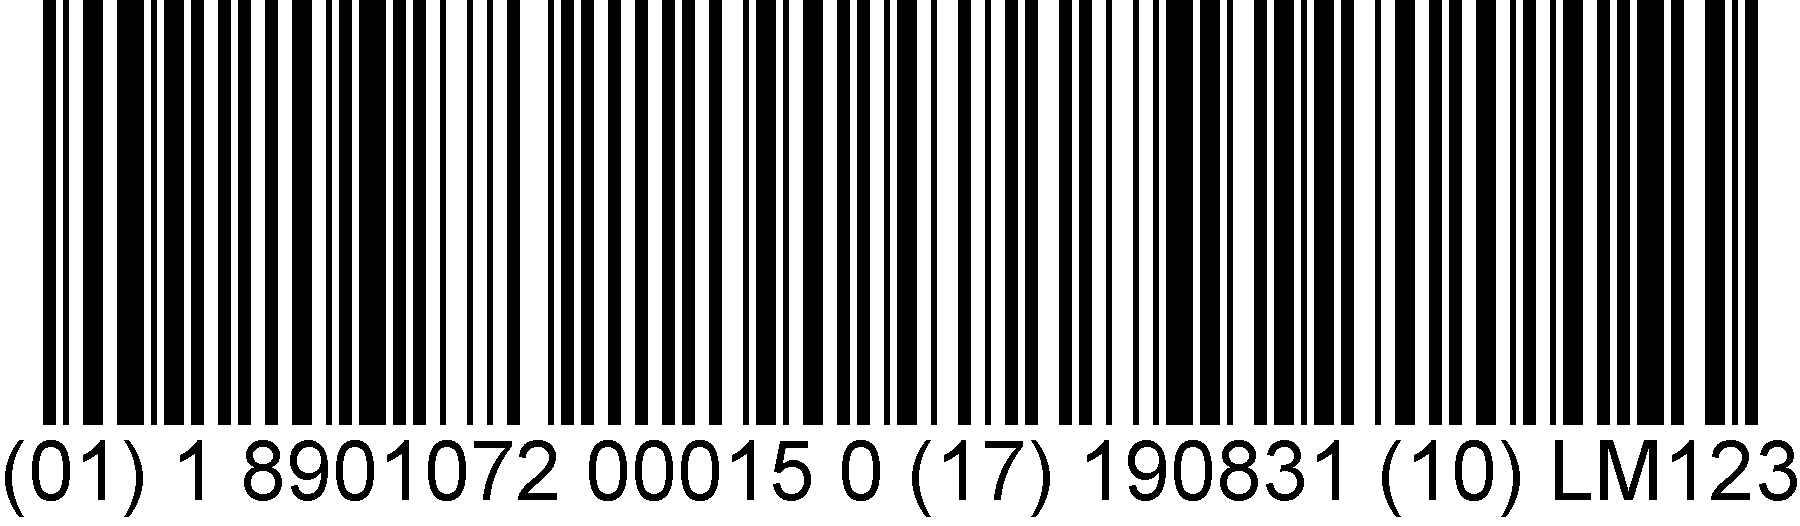 Barcode transparent png. Free image all